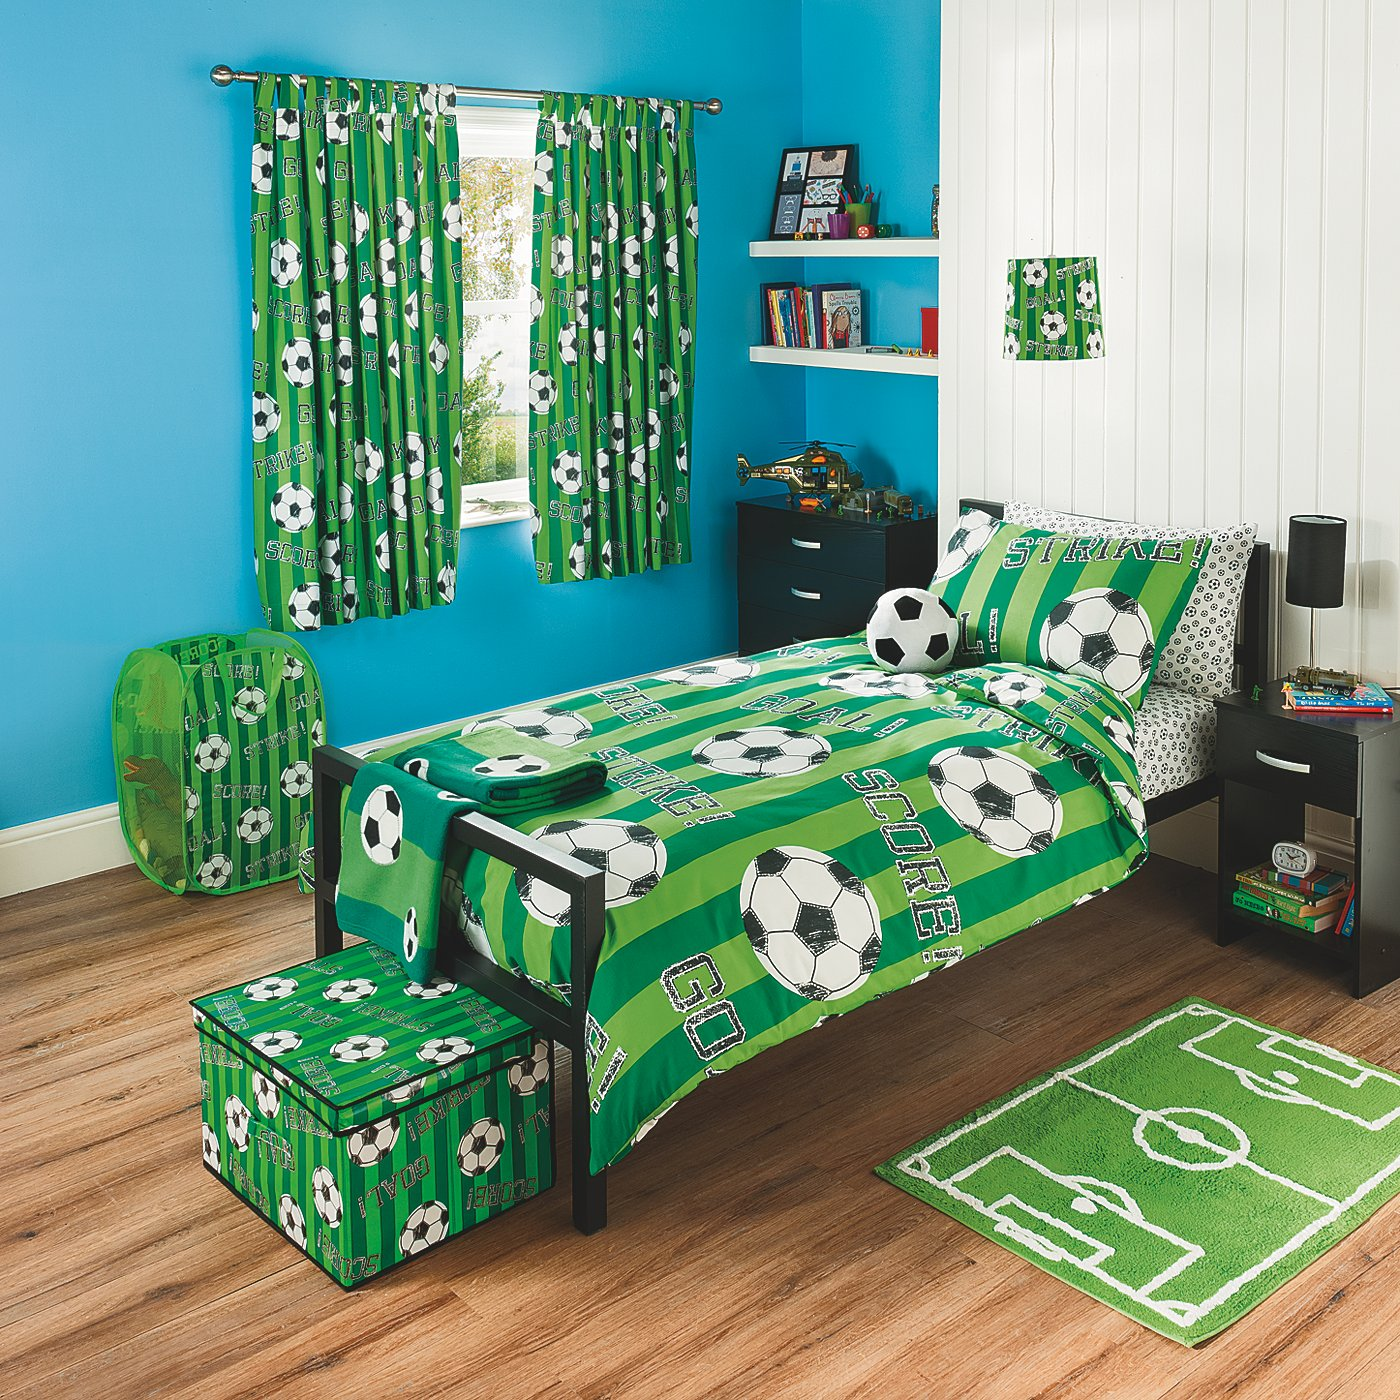 40 Age Boys Room Designs We Love. Childrens Football Bedroom Accessories   Design is important